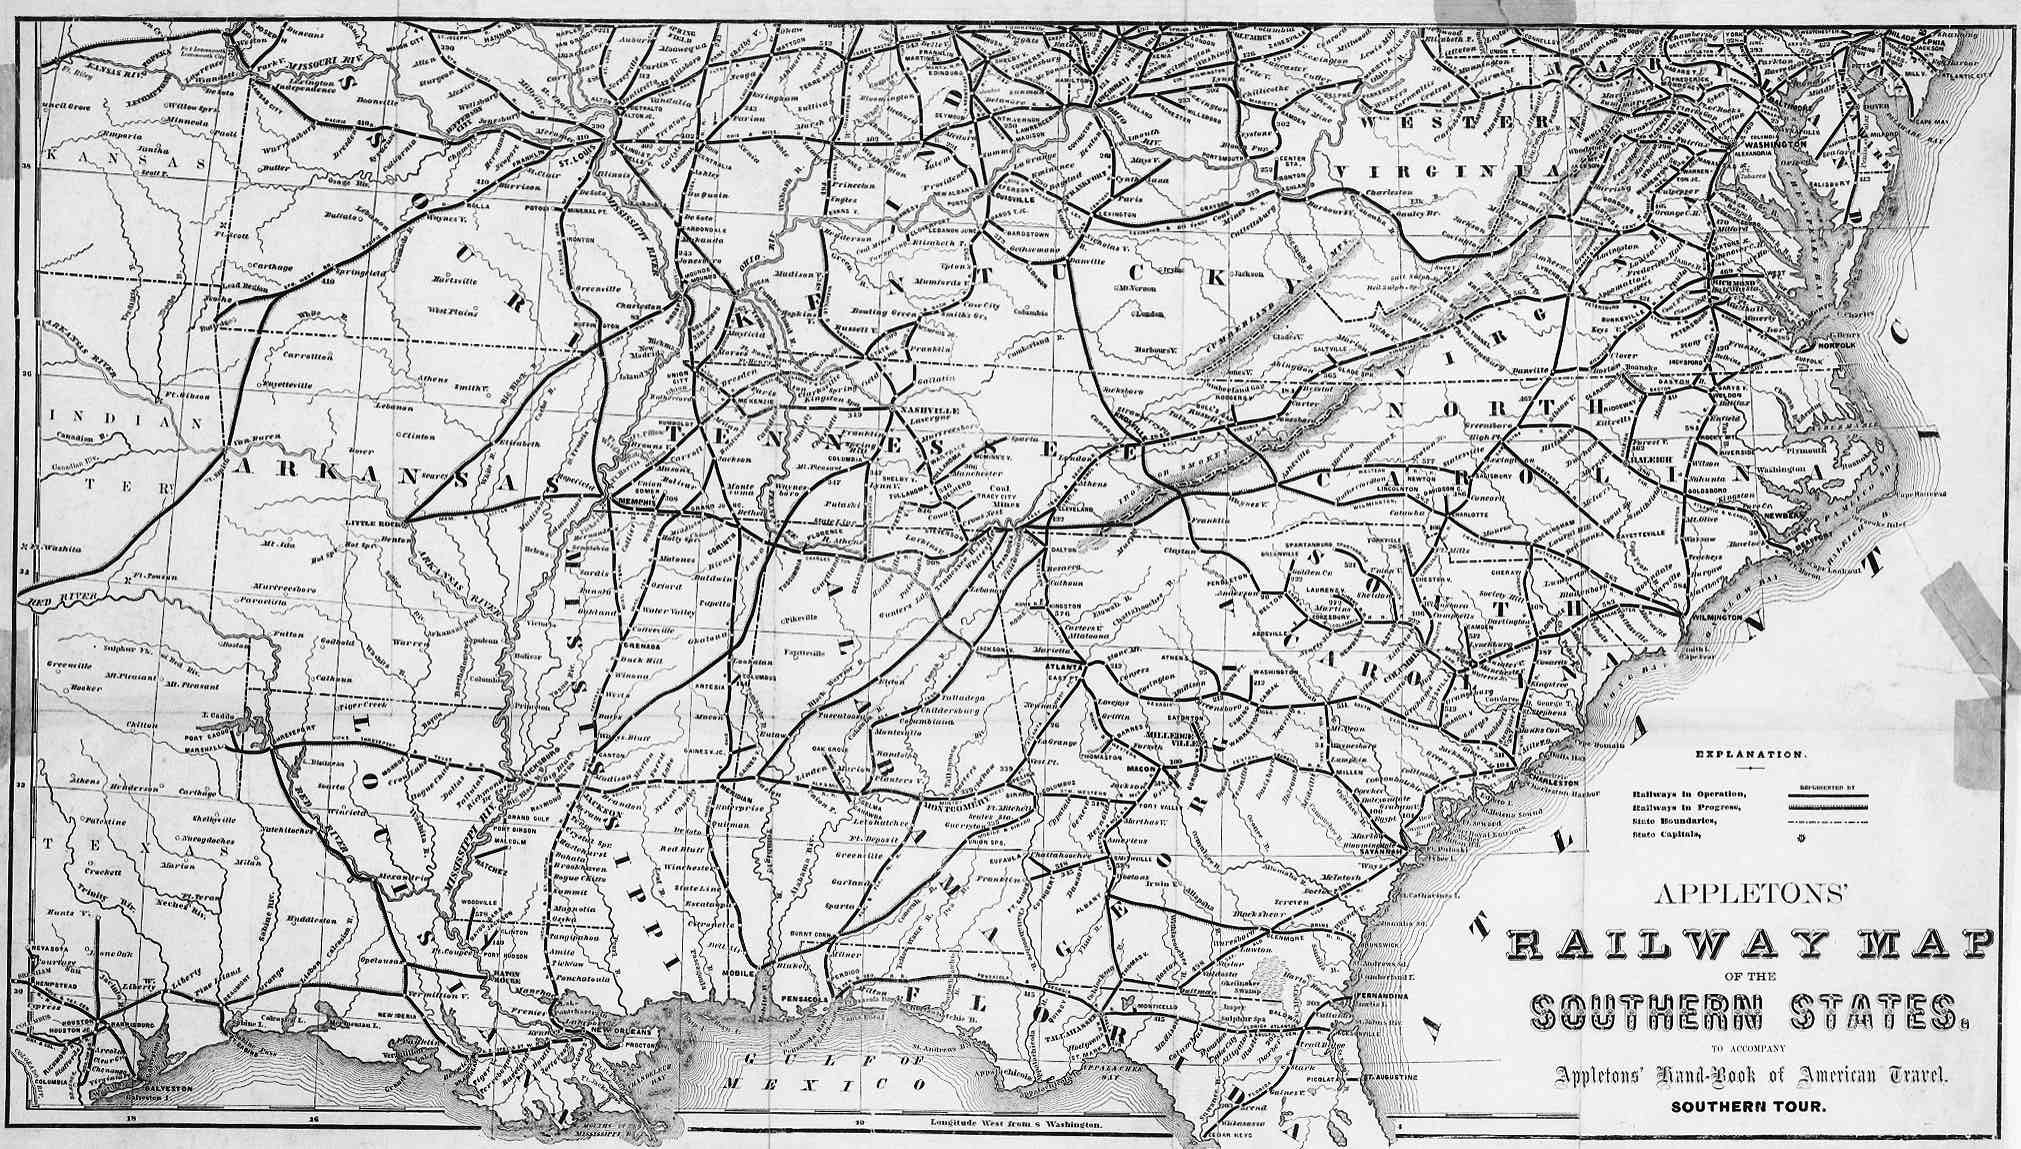 Southern US States Railway Map US Mappery - Map of southern us